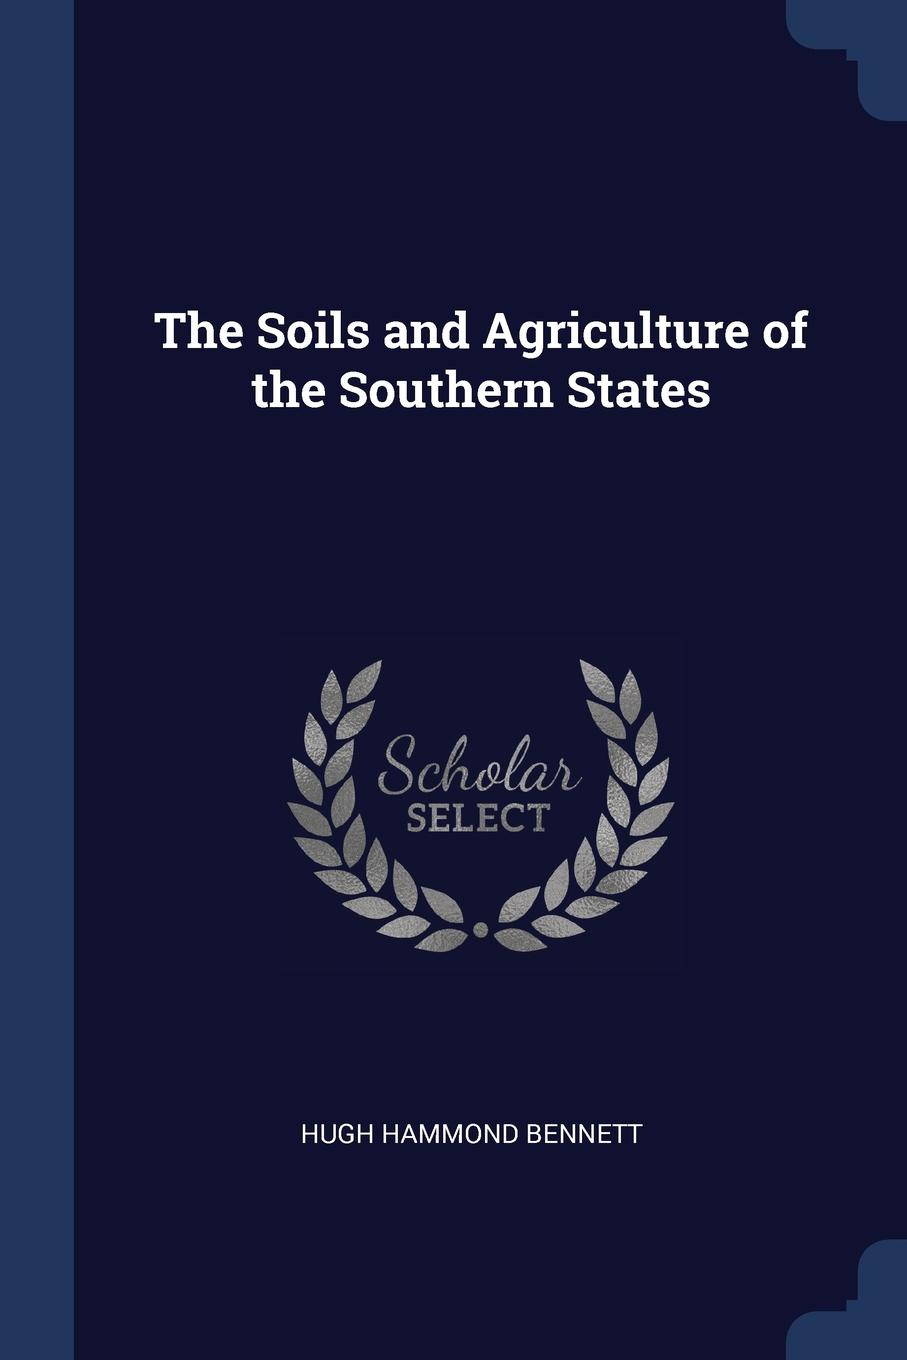 Hugh Hammond Bennett The Soils and Agriculture of the Southern States